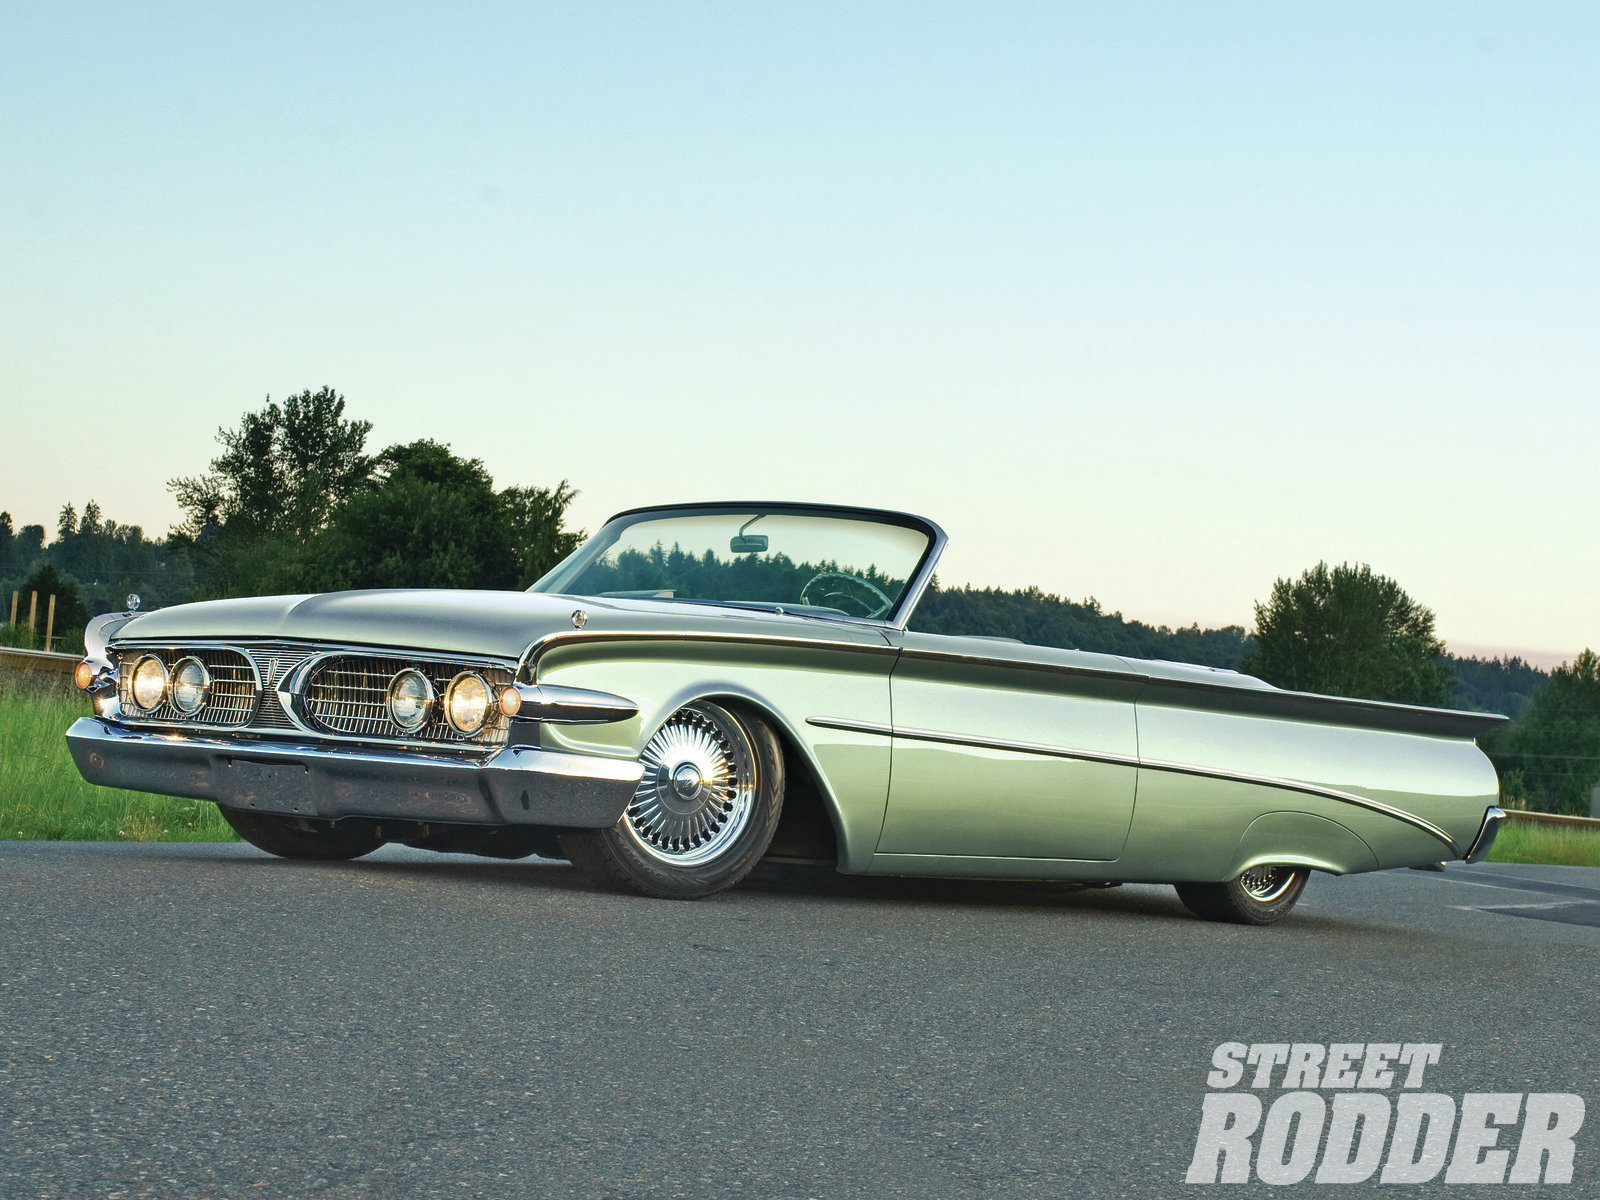 1960 Edsel Wallpaper and Background Image 1600x1200 ID396170 1600x1200